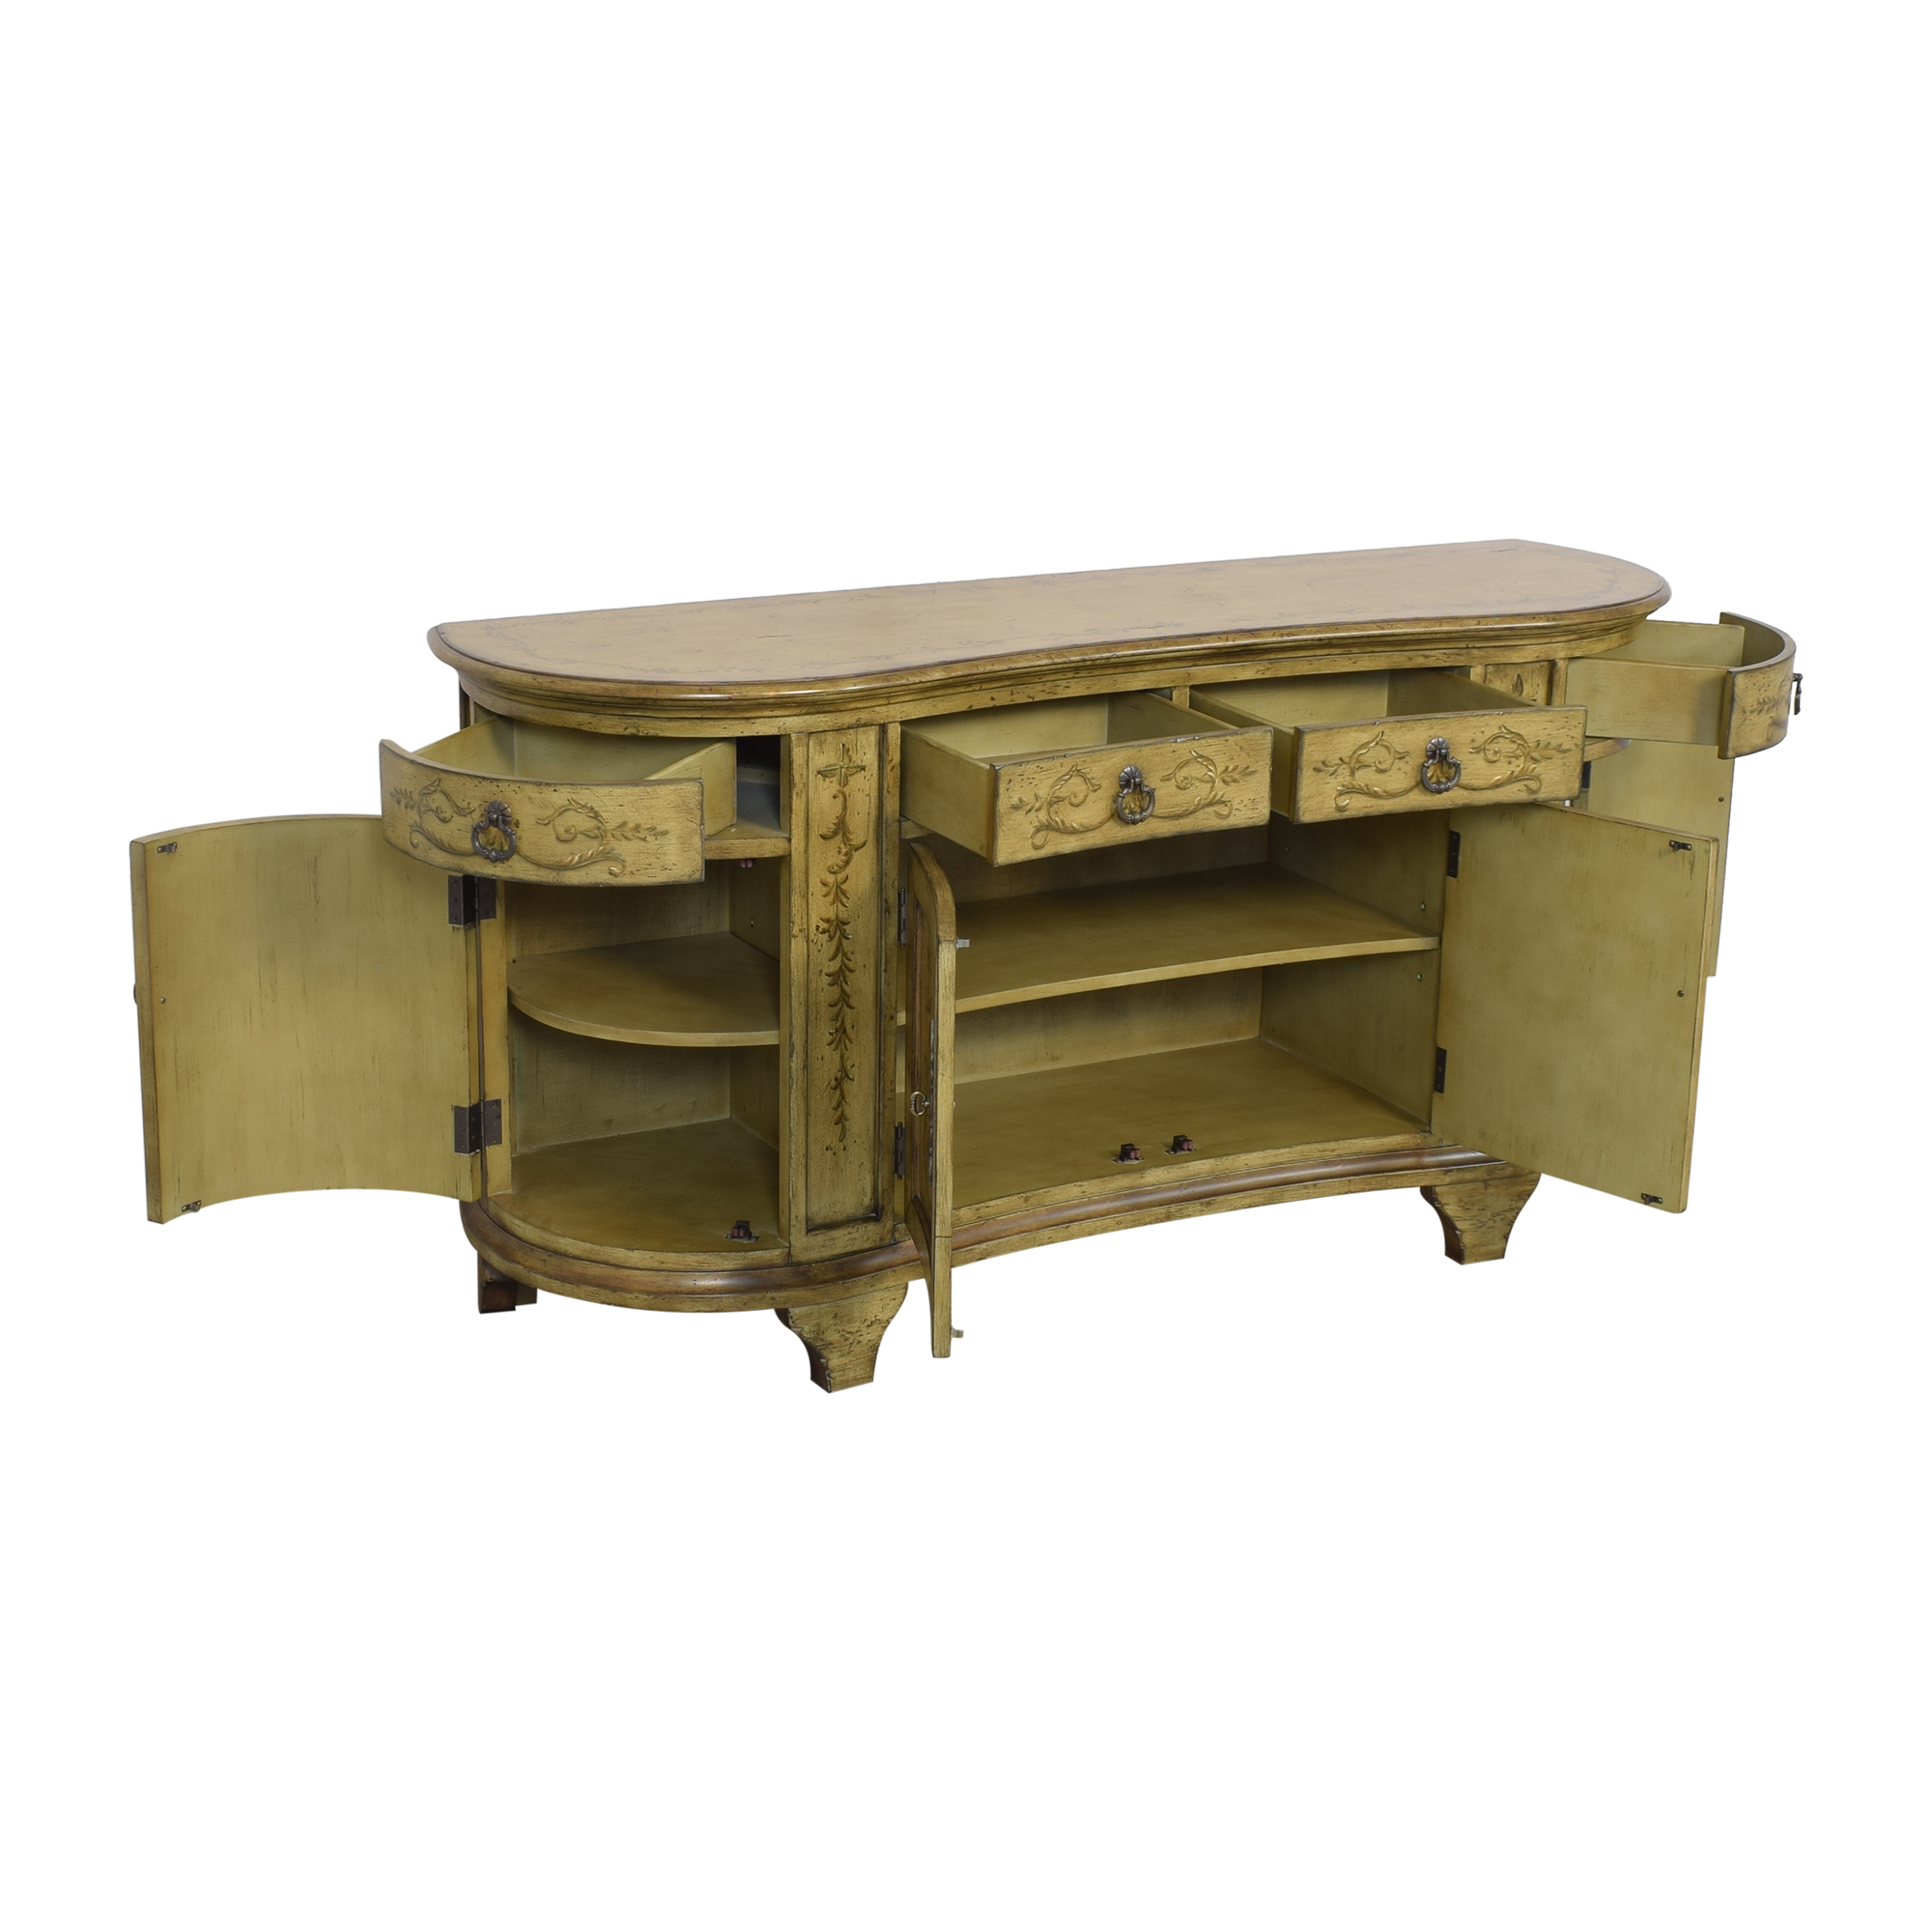 Hooker Furniture Hooker Seven Seas Sideboard on sale